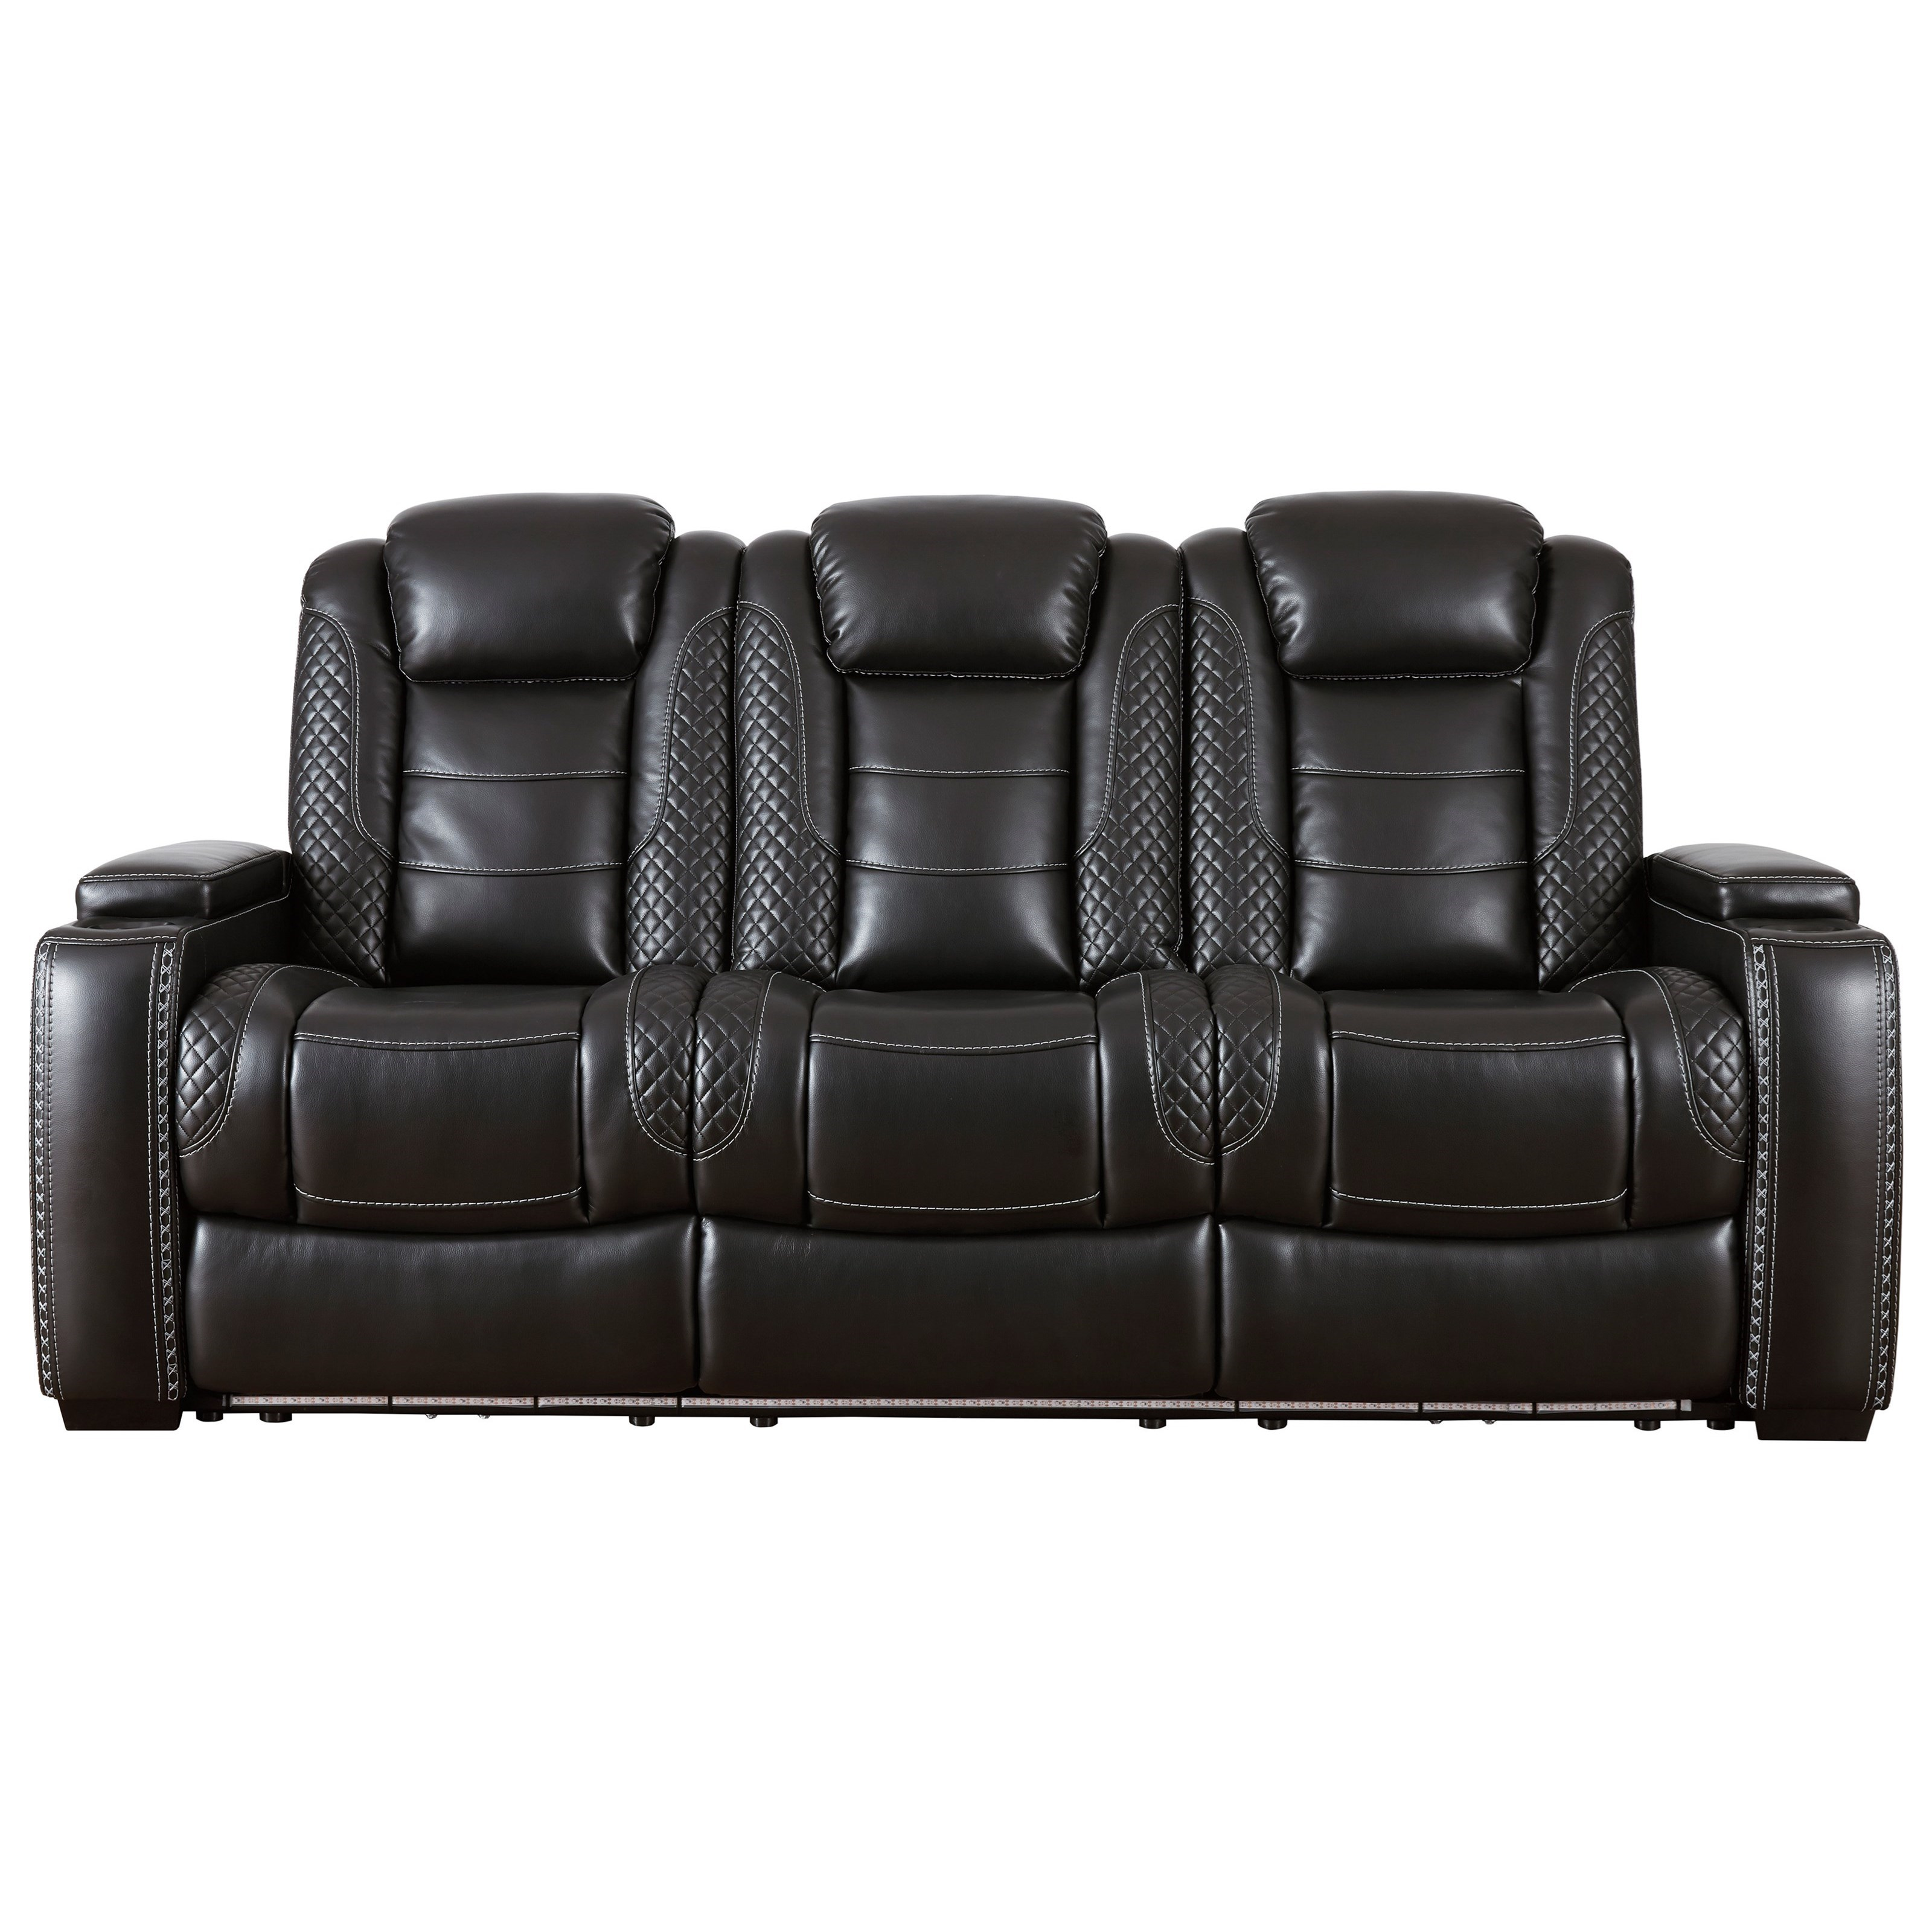 Party Time Power Reclining Sofa w/ Adjustable Headrests by Signature Design by Ashley at Northeast Factory Direct